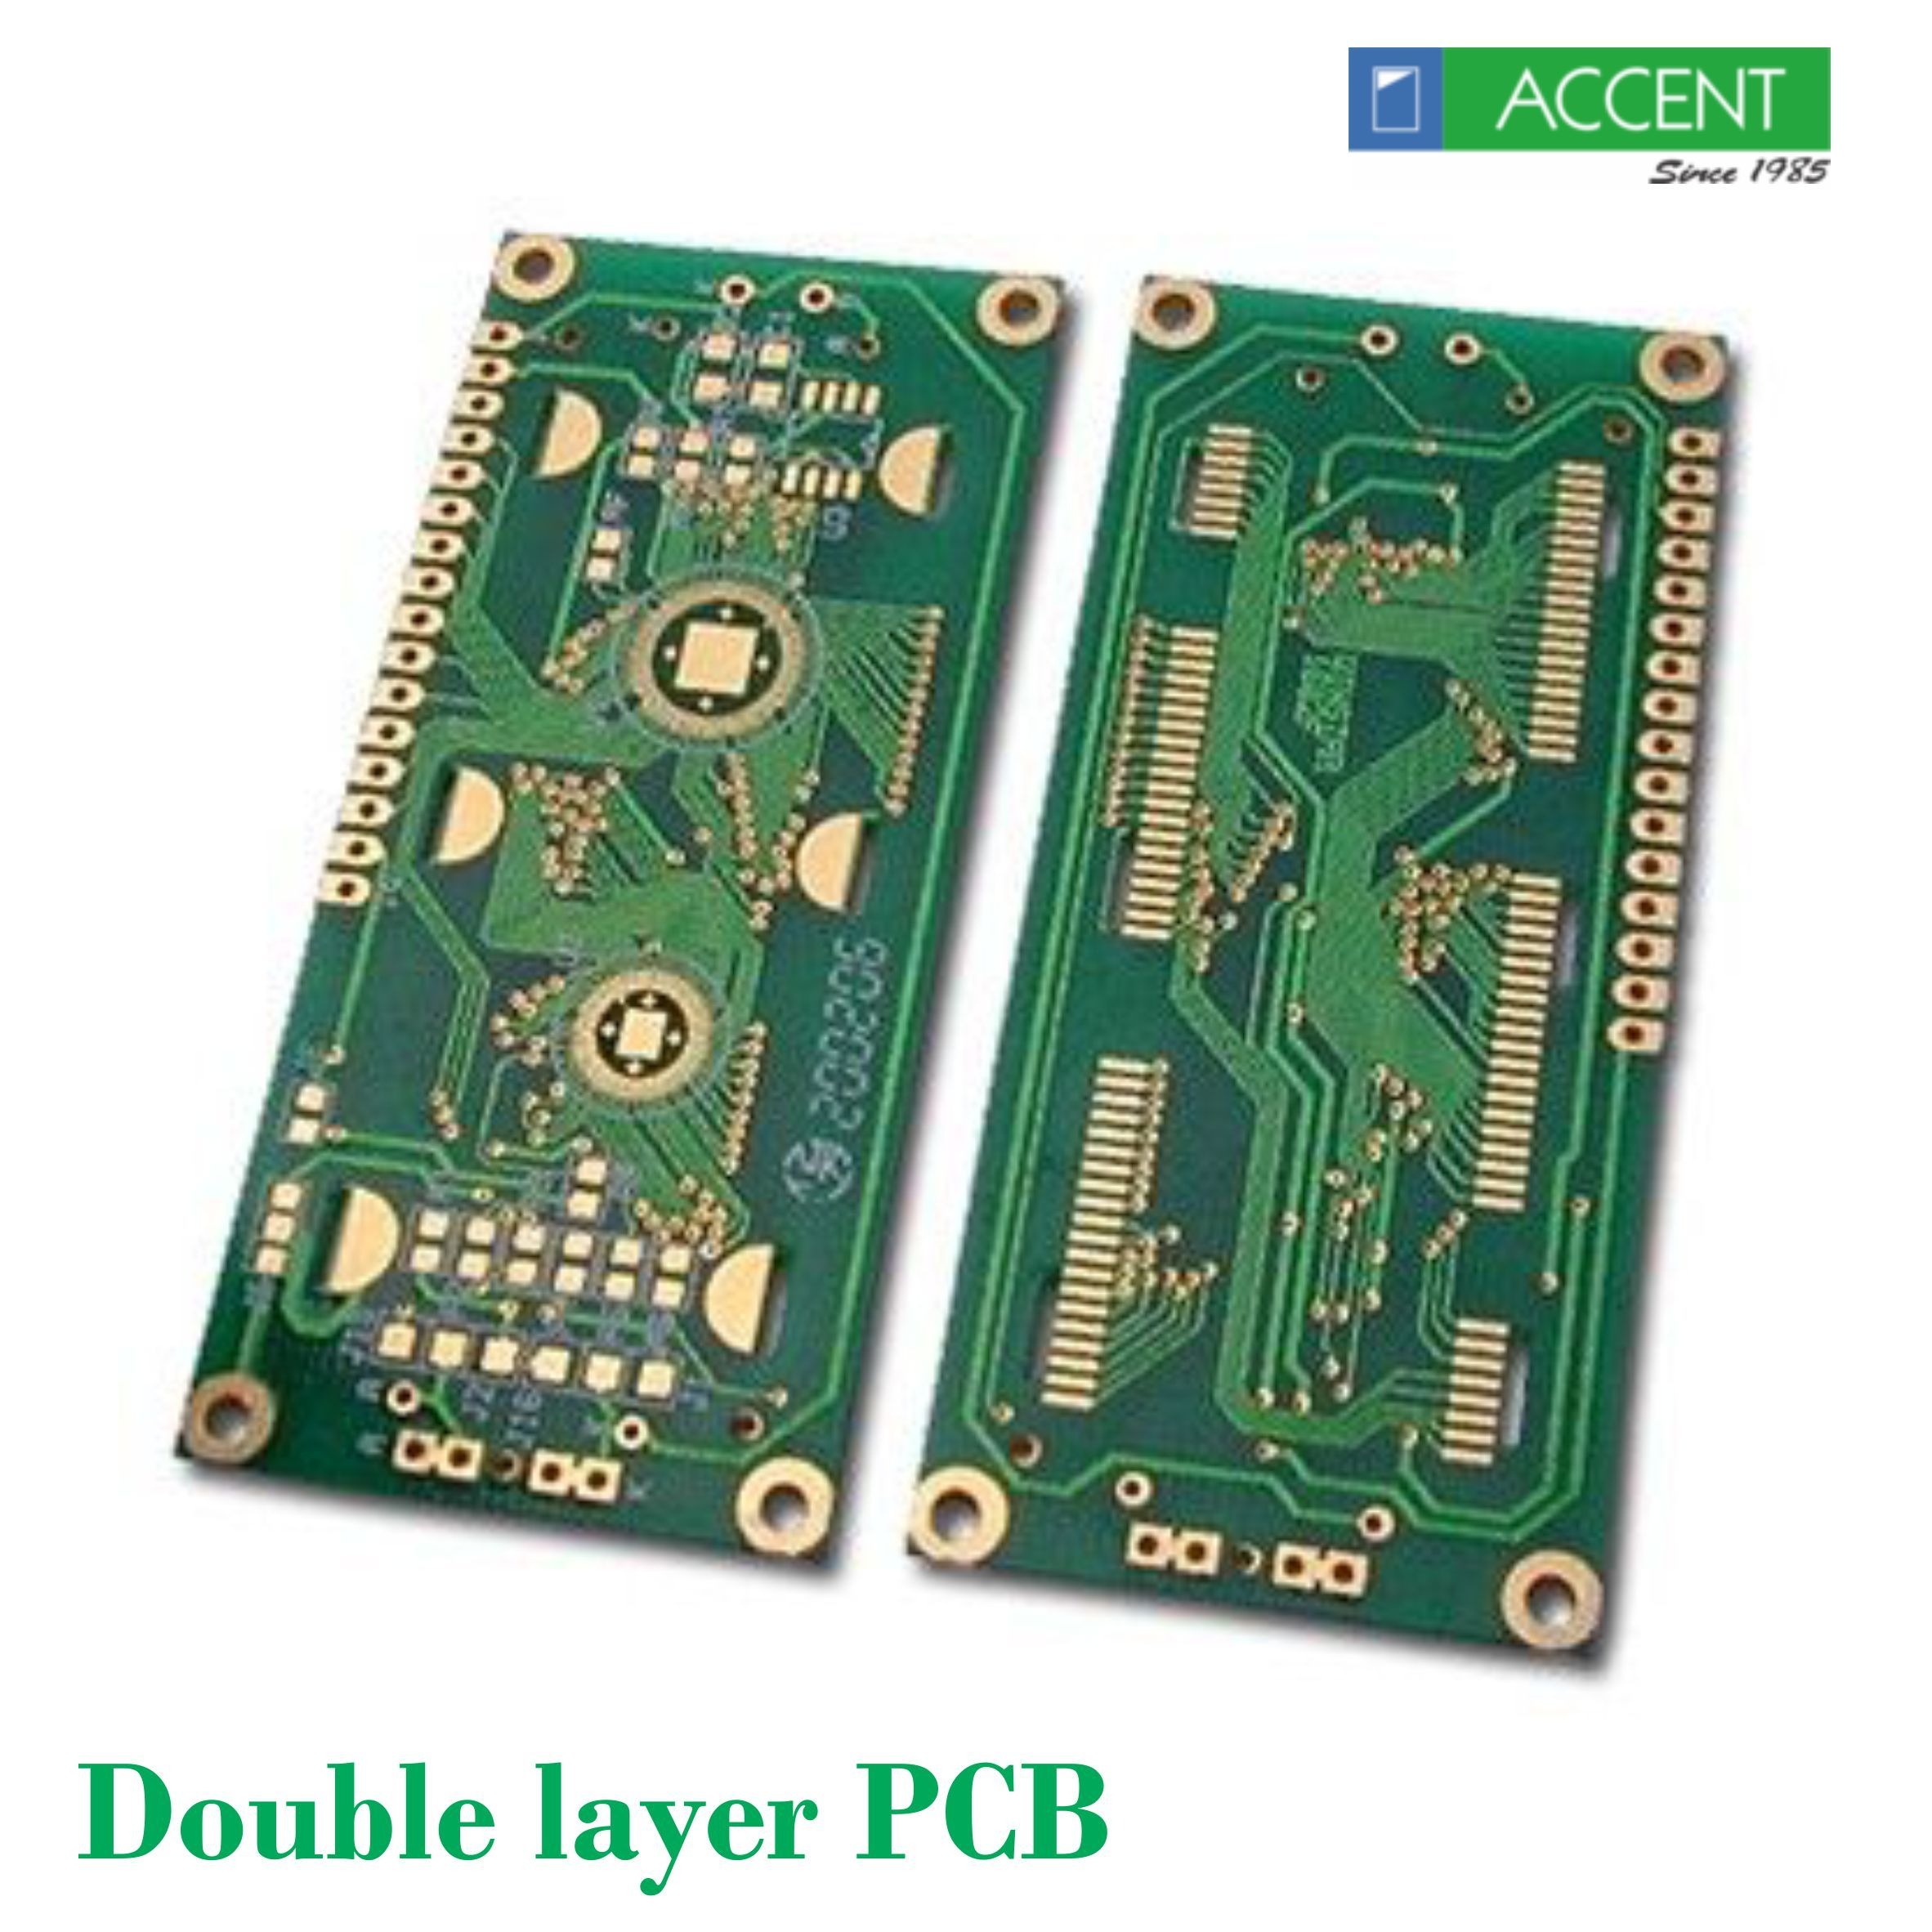 Double Layer Pcb The Double Layer Or Double Sided Printed Circuit Boards Have Twice The Area For Electronic Circuit Board Printed Circuit Manufacturing